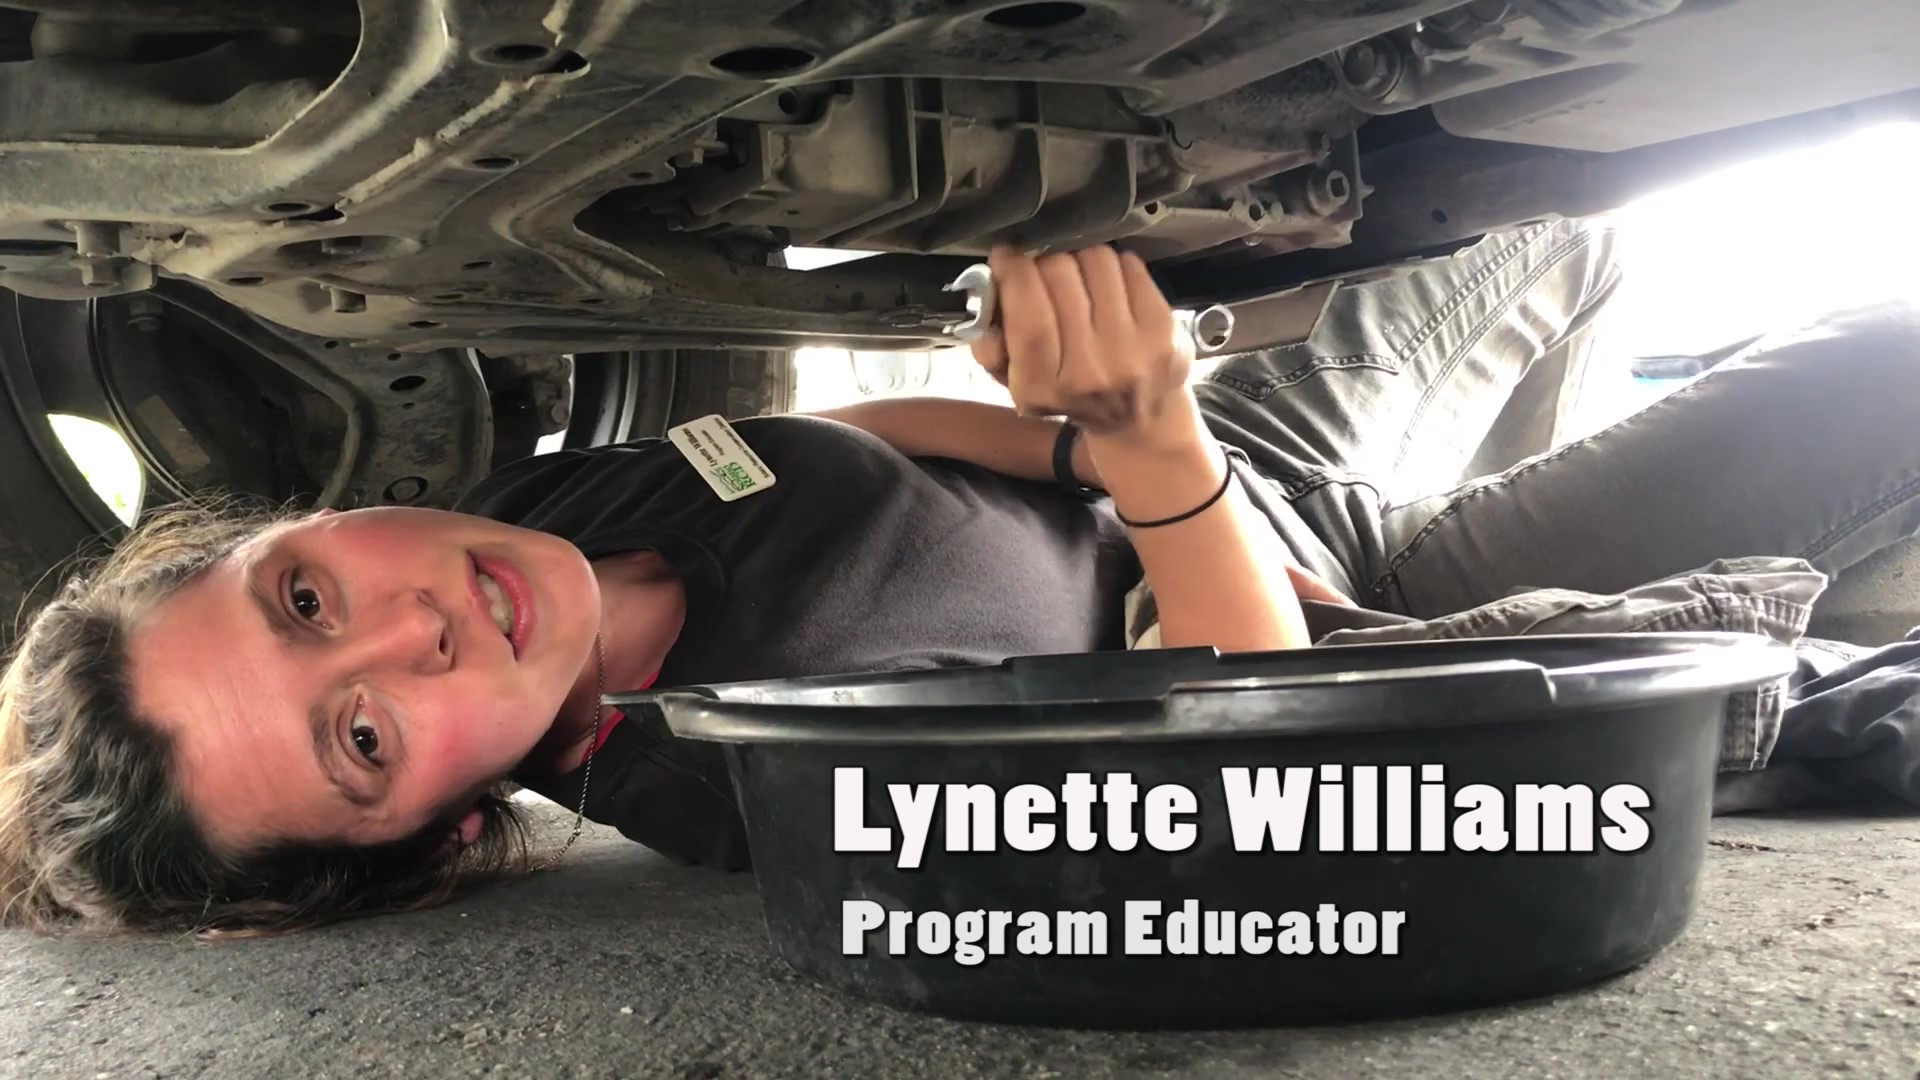 Recycle used oil with Lynette